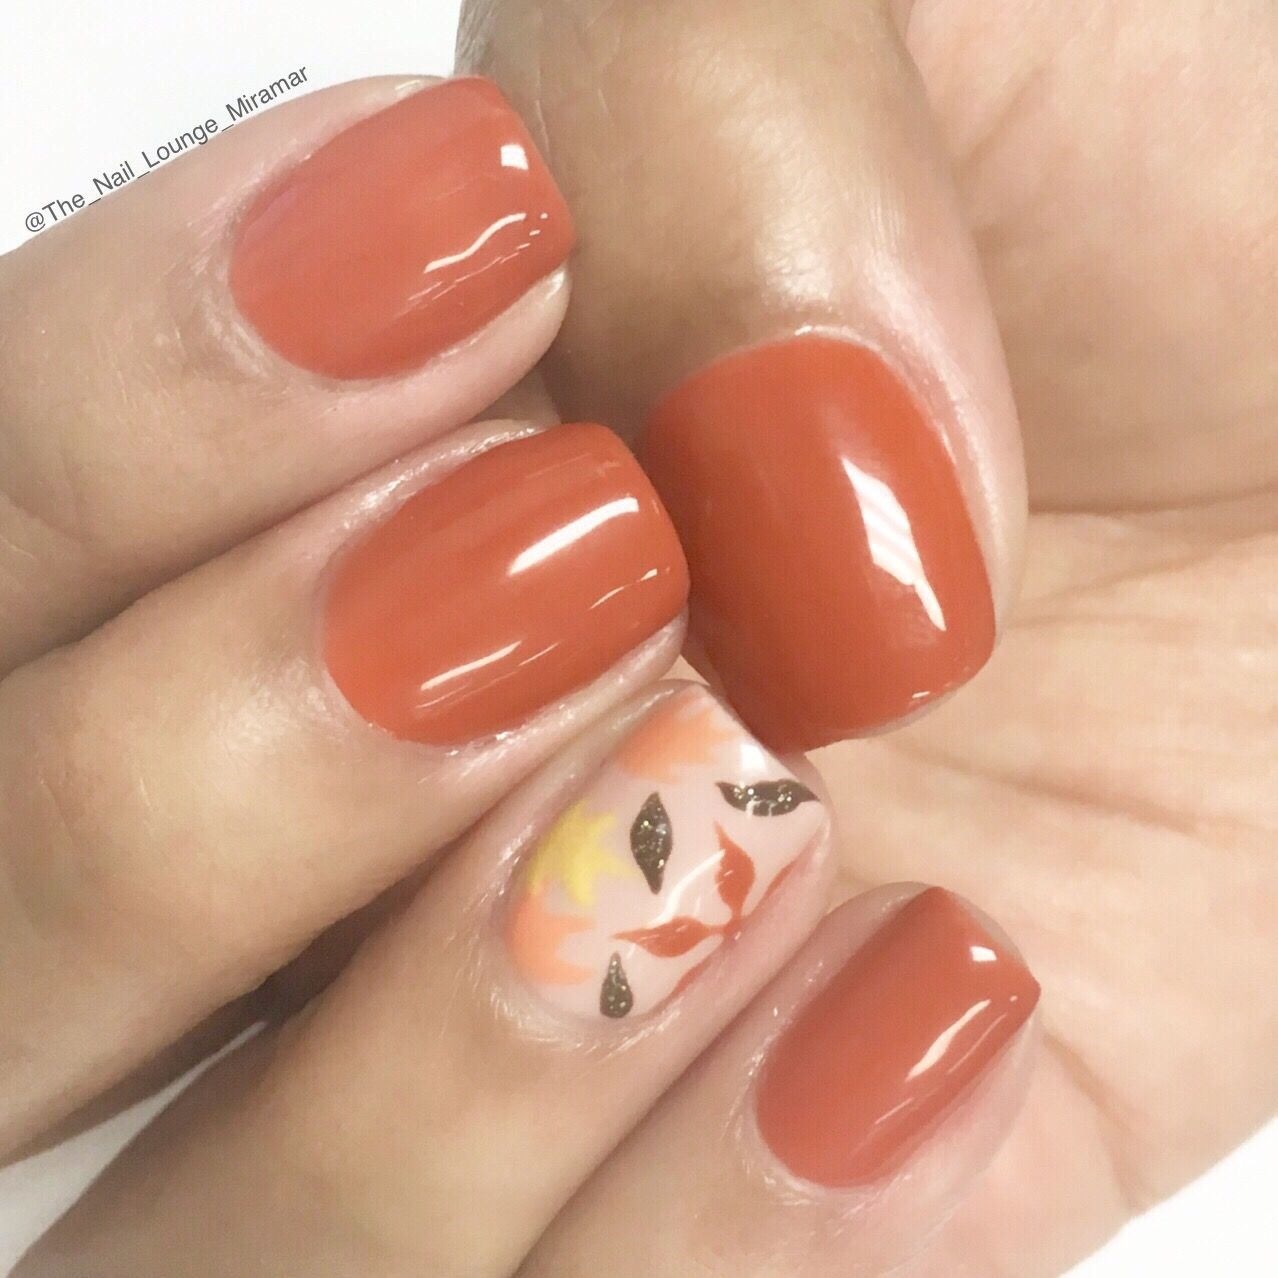 Simple Fall Nail Designs: Fall Leaves Nail Art Design